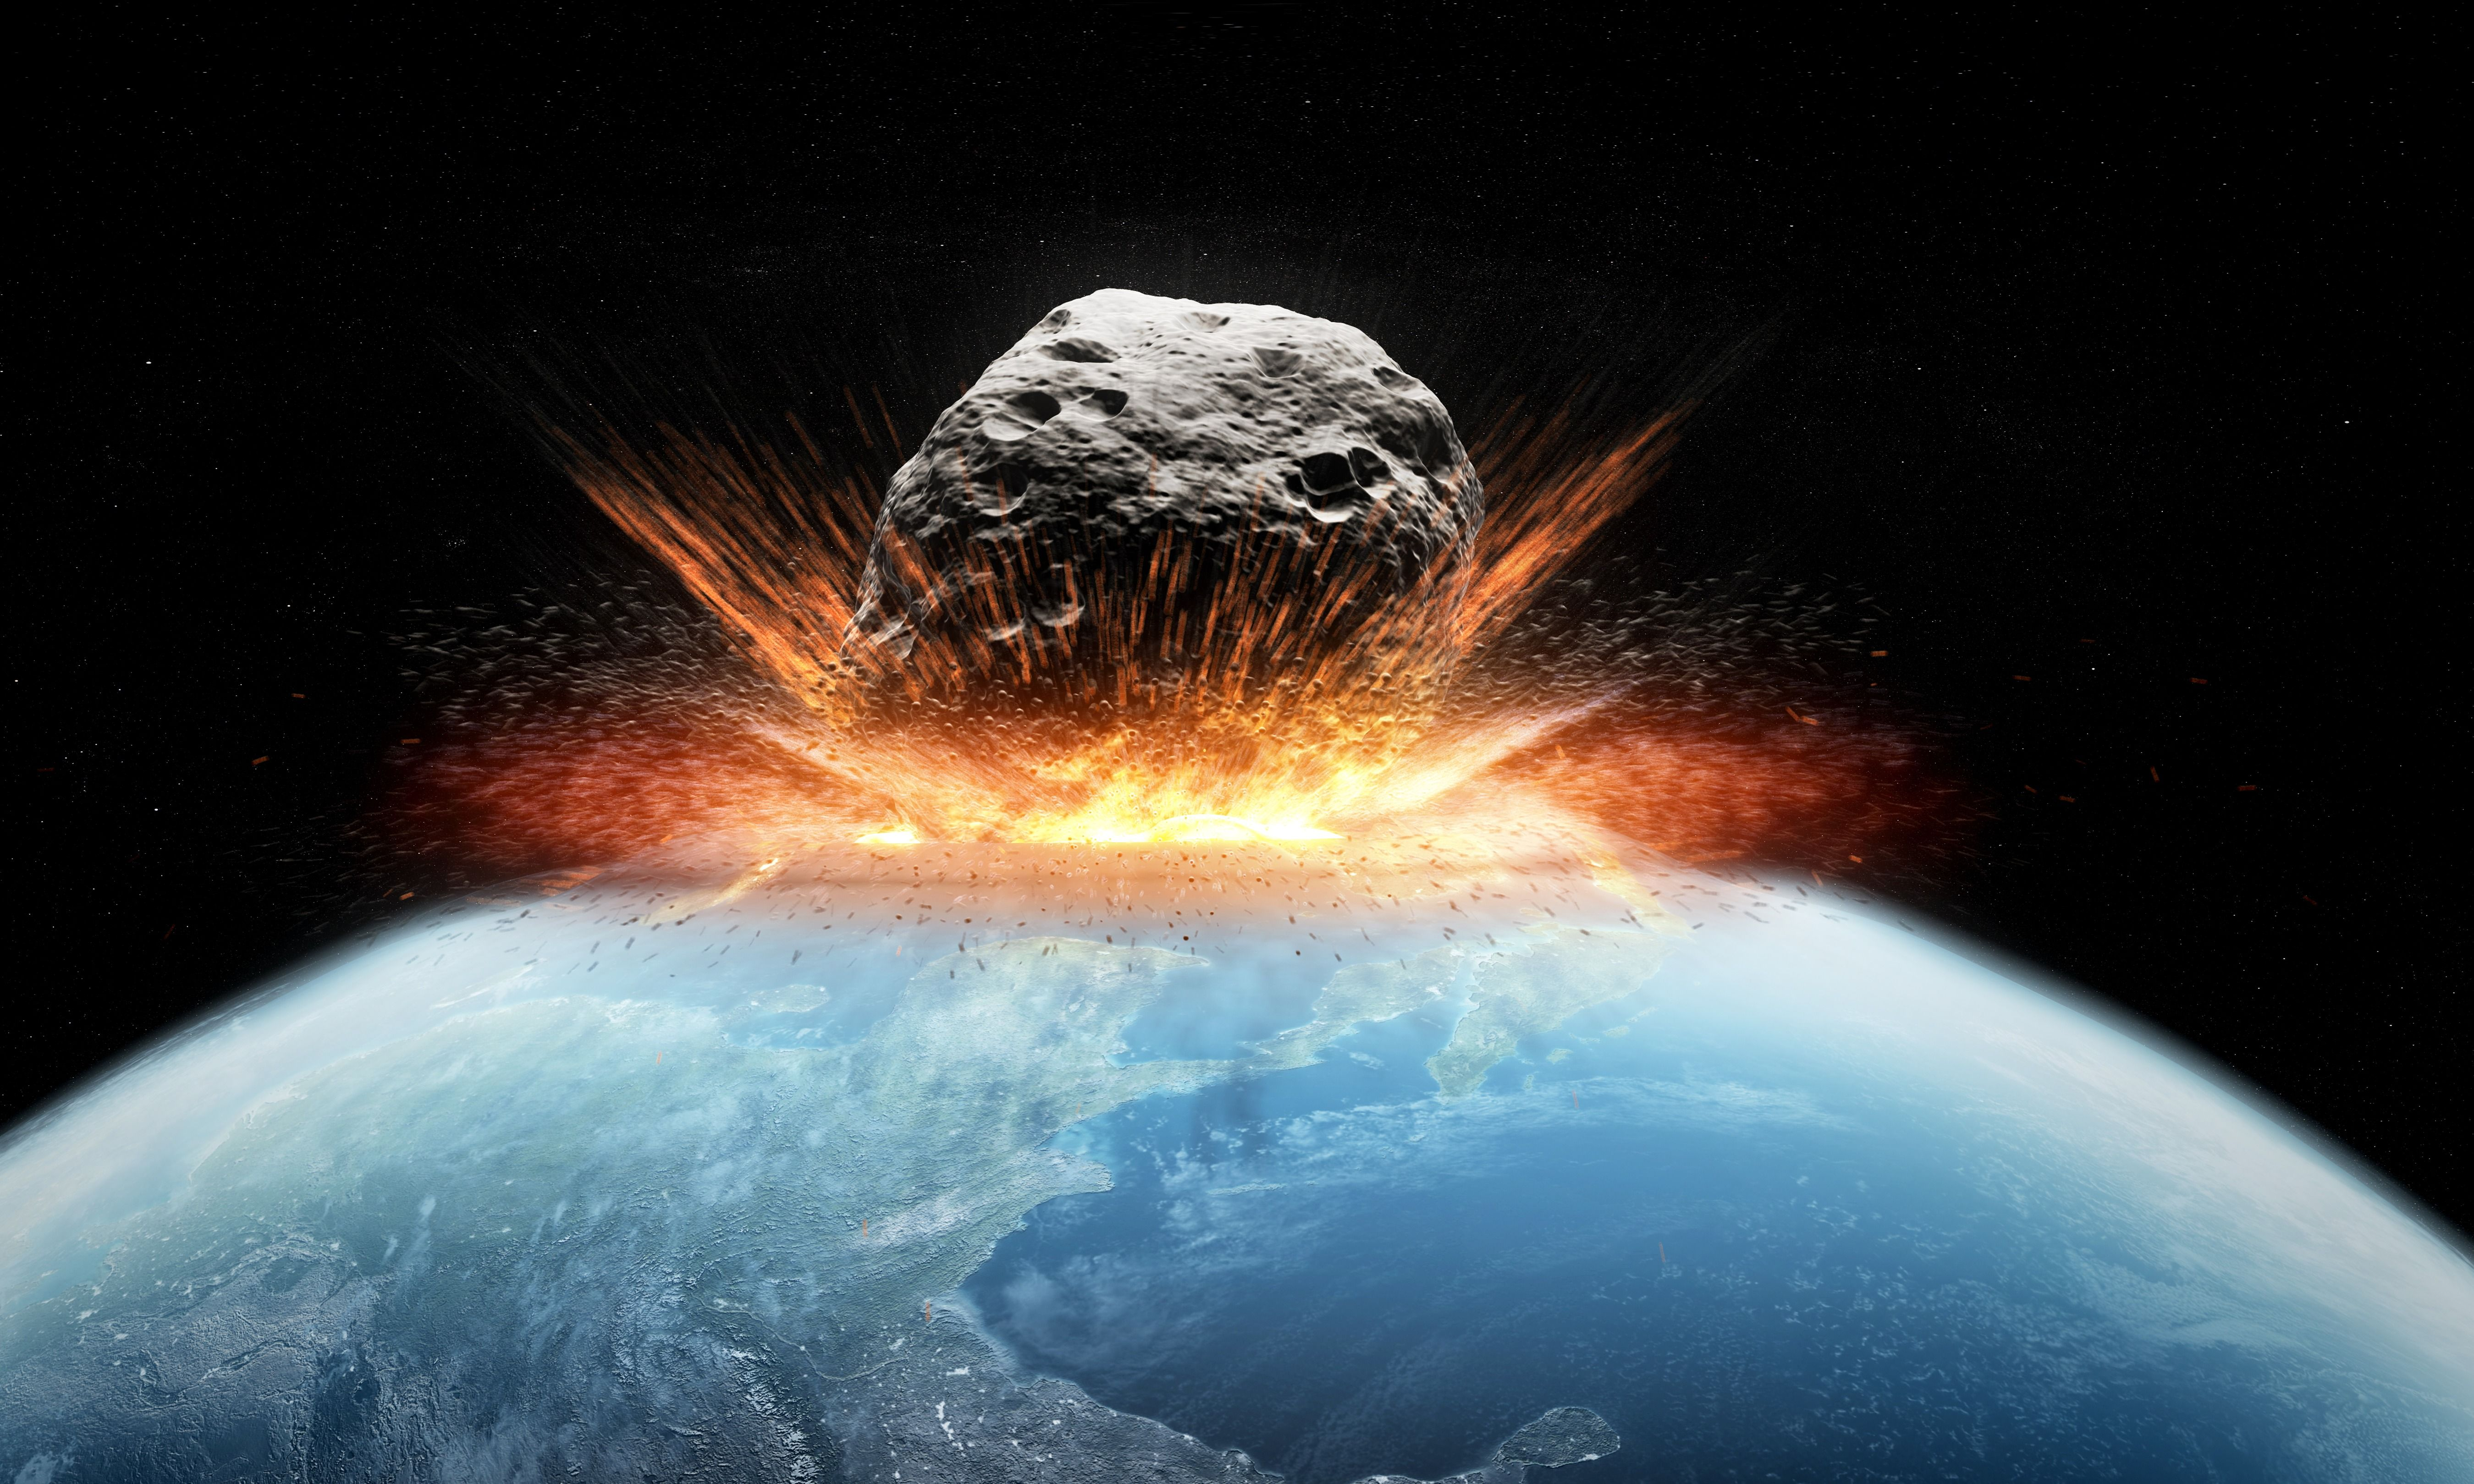 Election Day Asteroid Is An Asteroid Really Hitting Earth Nov 2 Good planets are hard to find. popular mechanics